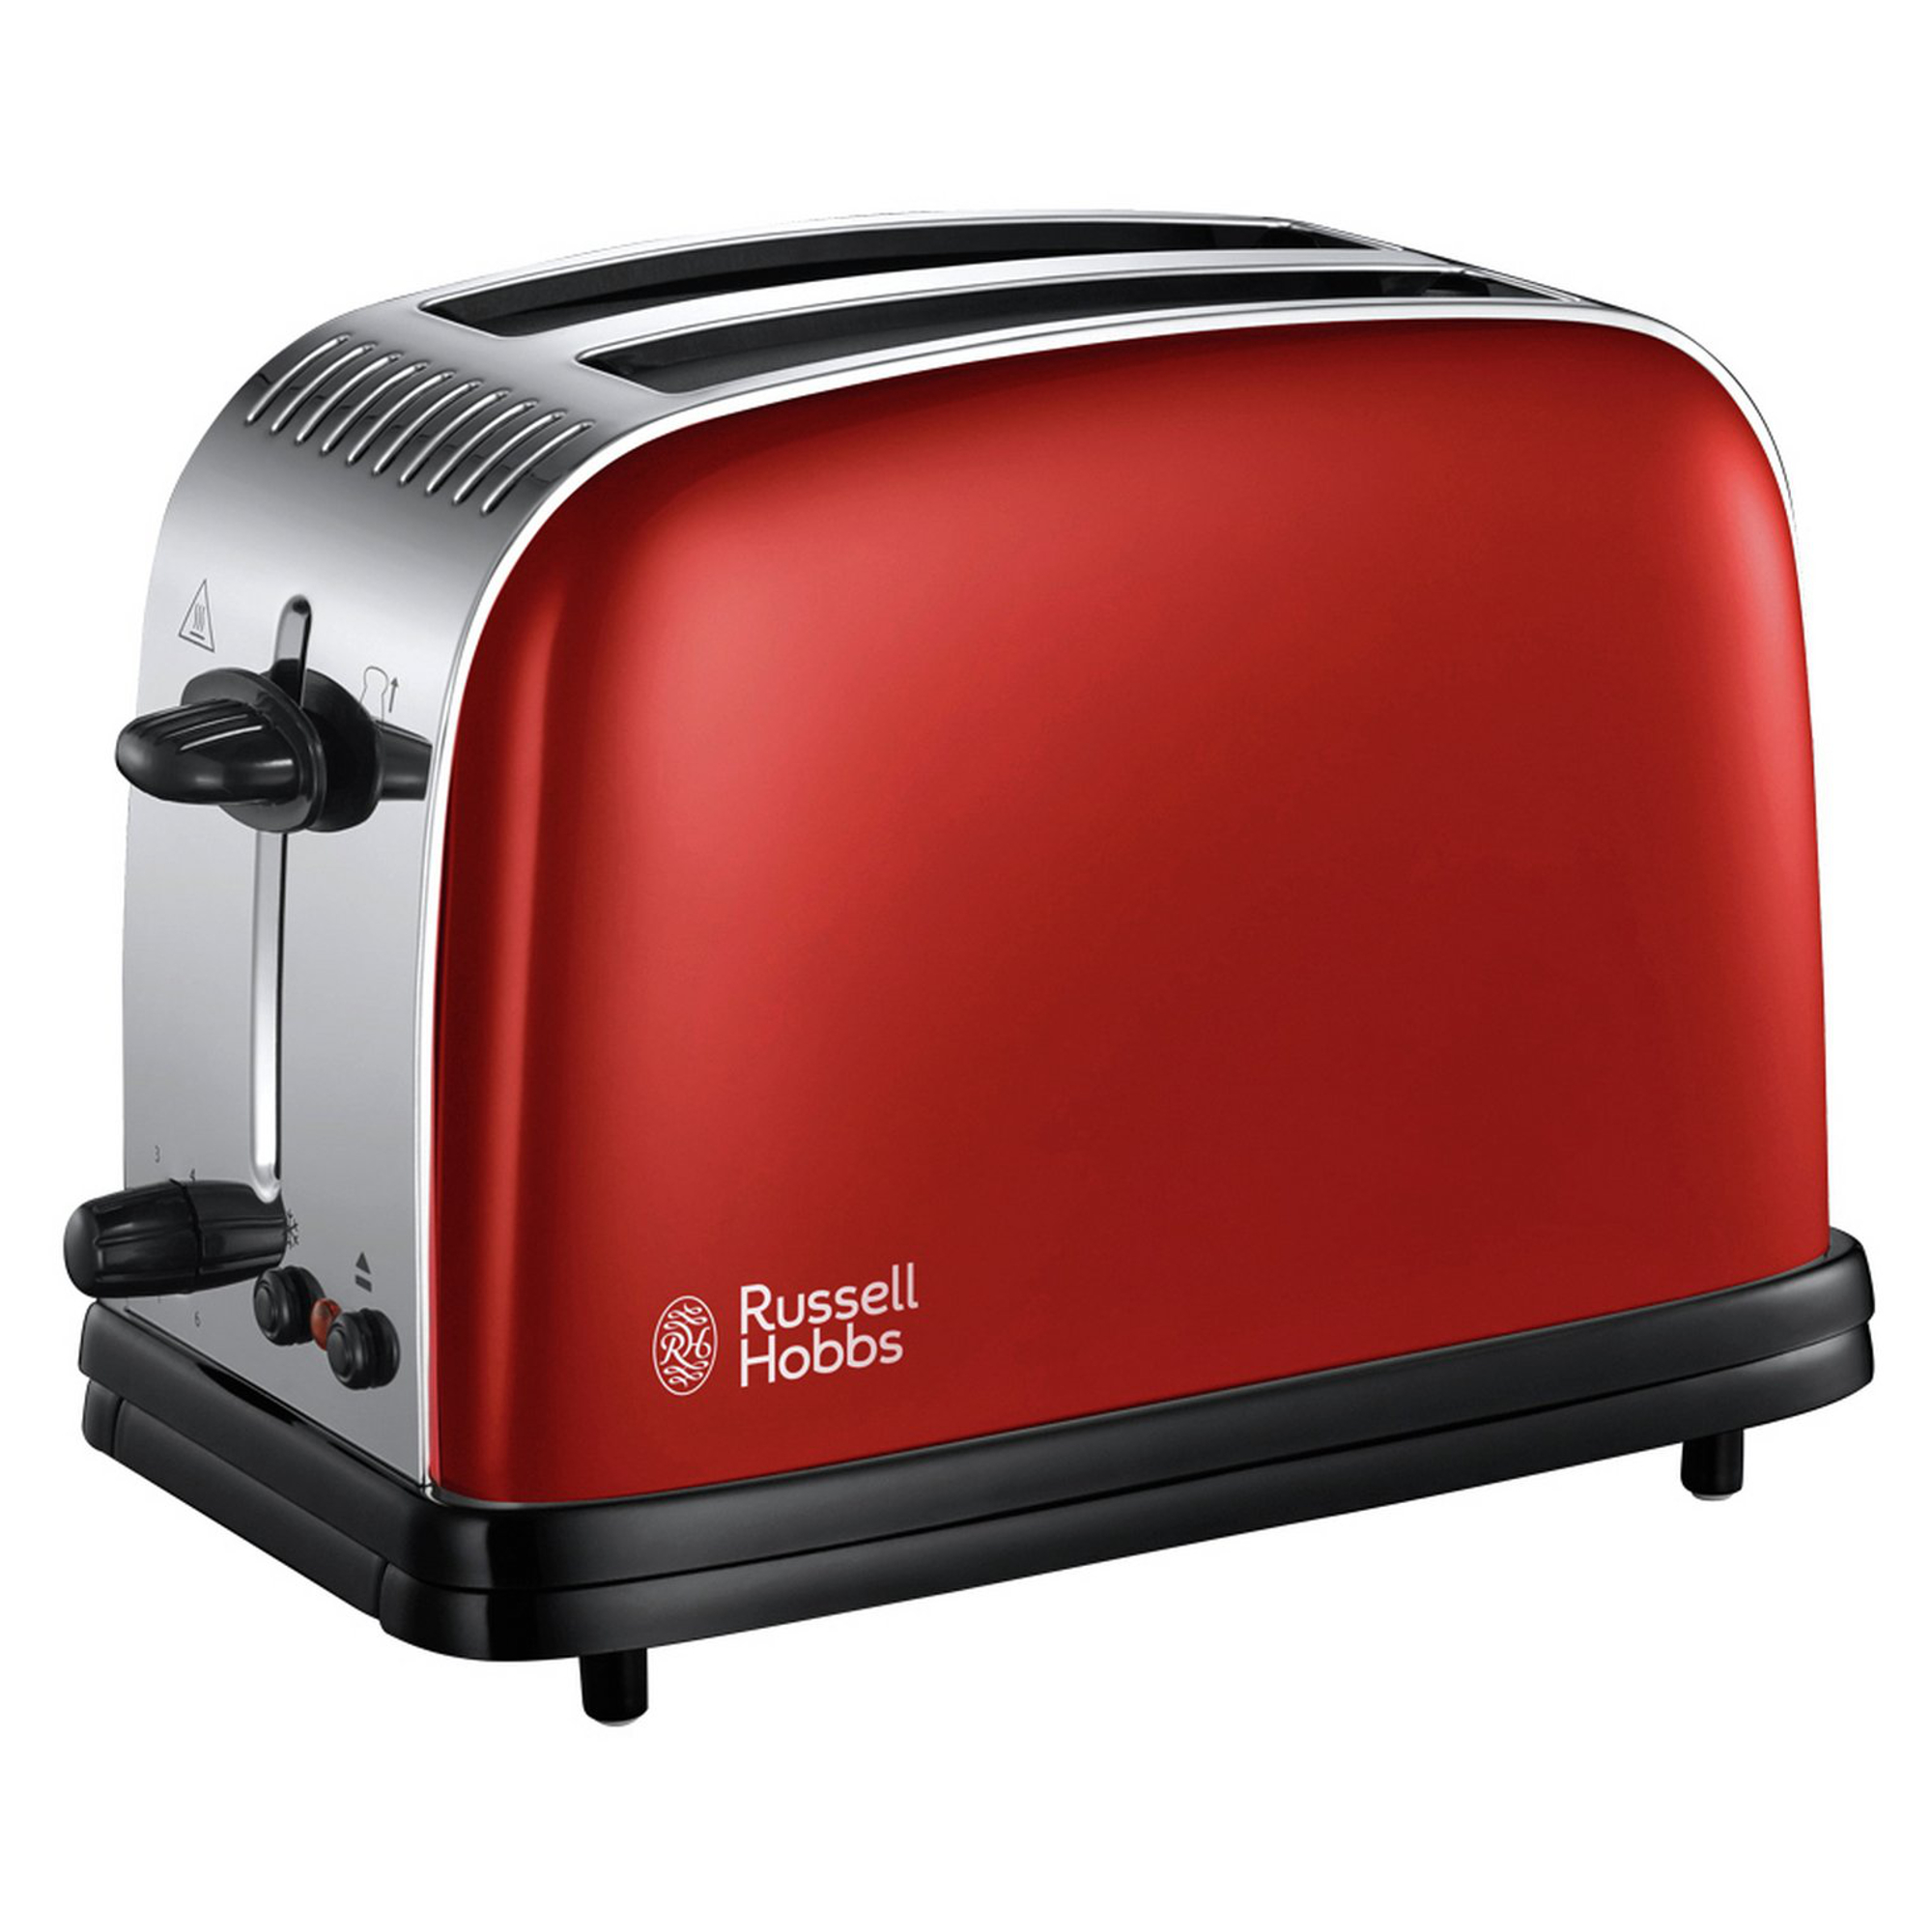 expect great also test in delivers retro it of its smeg available a best from can looked the design and buy but toaster chrome toasters certainly slice our you s range stunning model